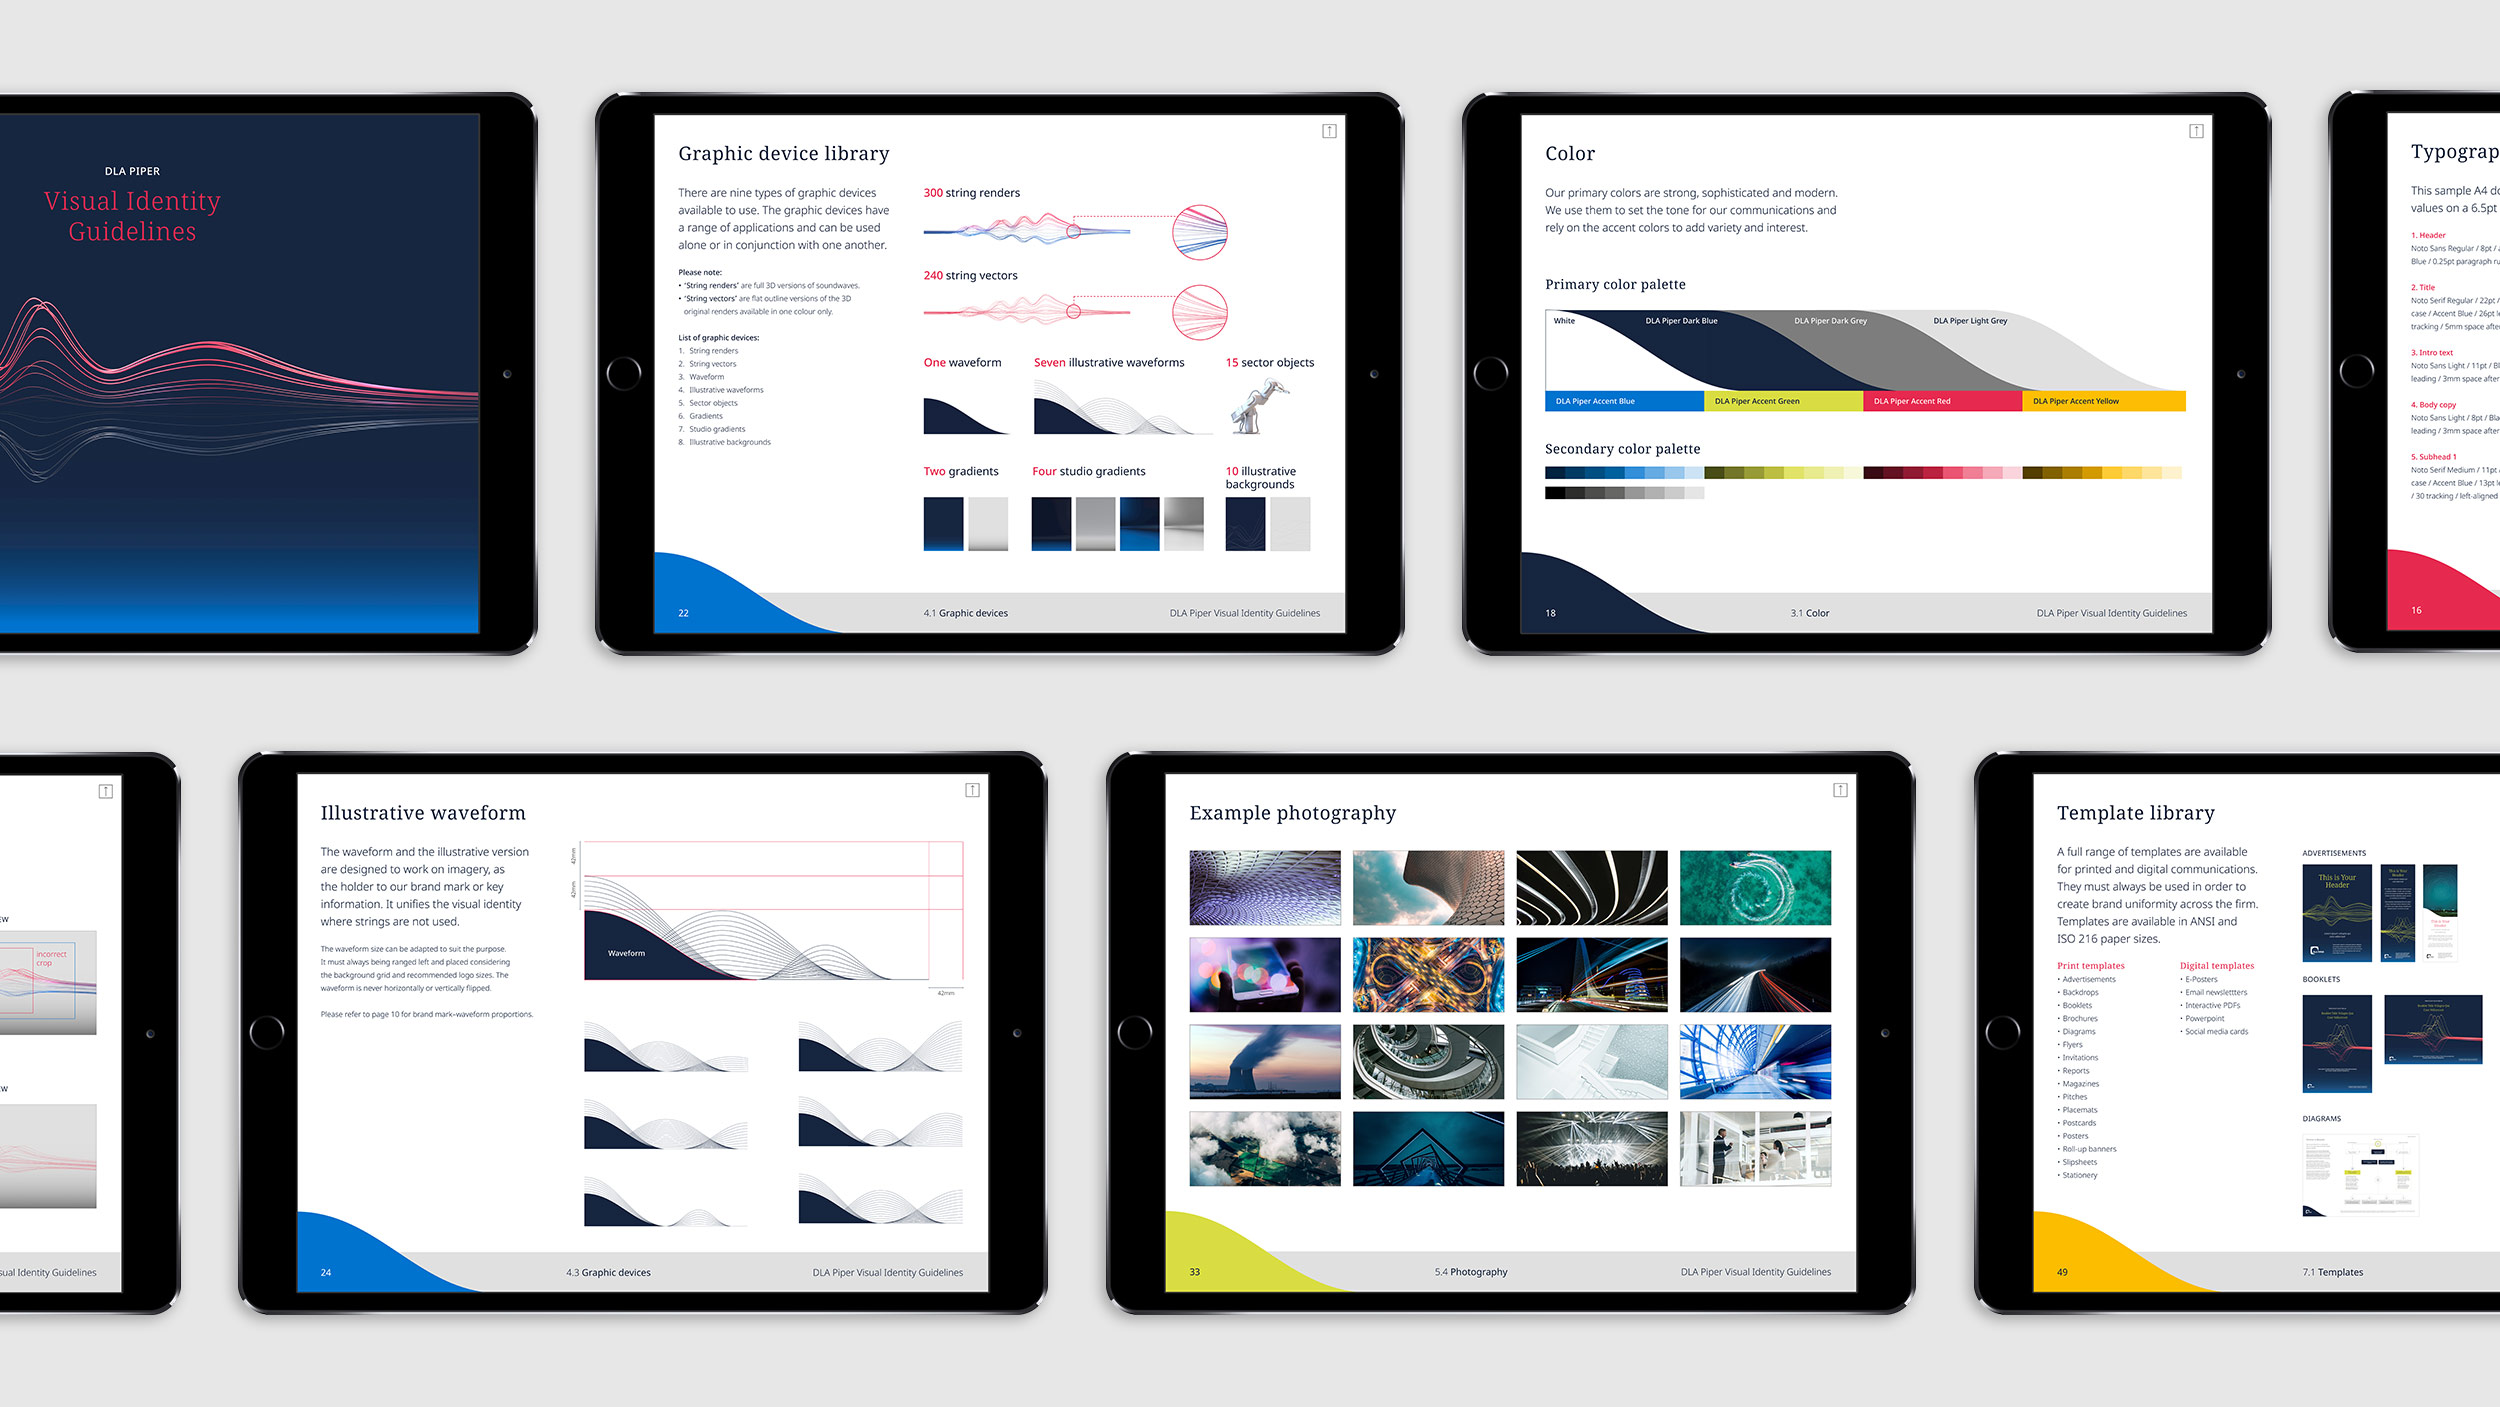 DLA Piper's brand guidelines displayed on ipads